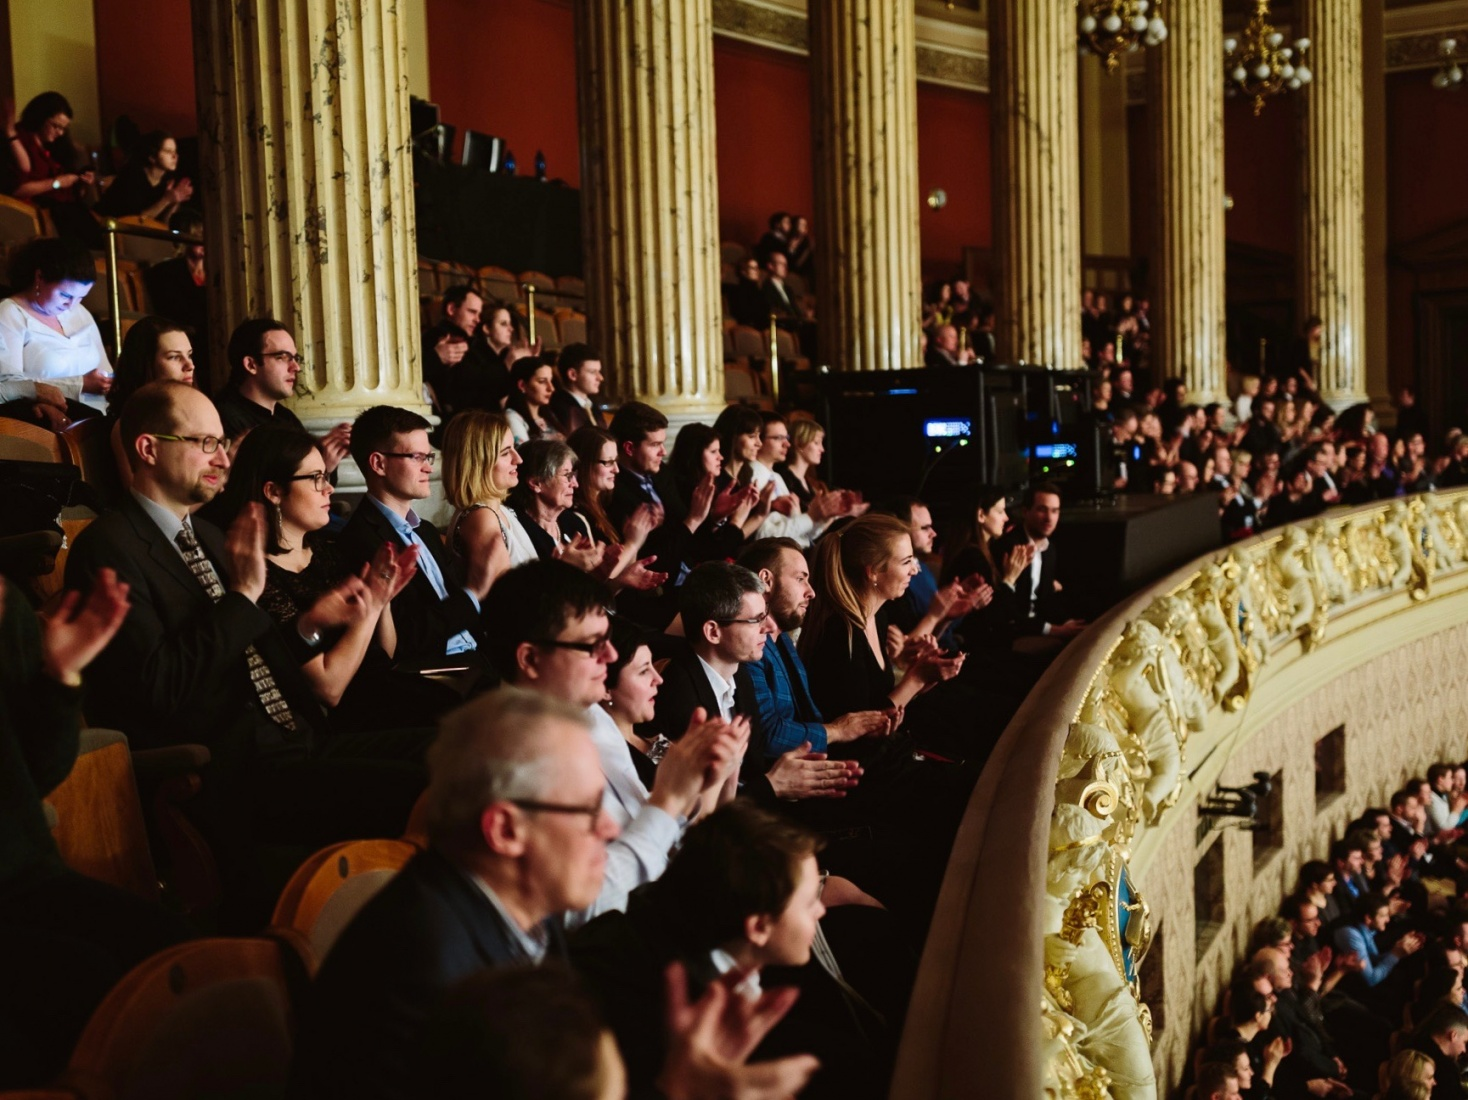 People in the crowded audience at the Rudolfinum's Dvořák Hall, in Prague, Czech Republic. Photo credit: Dušan Vondra.